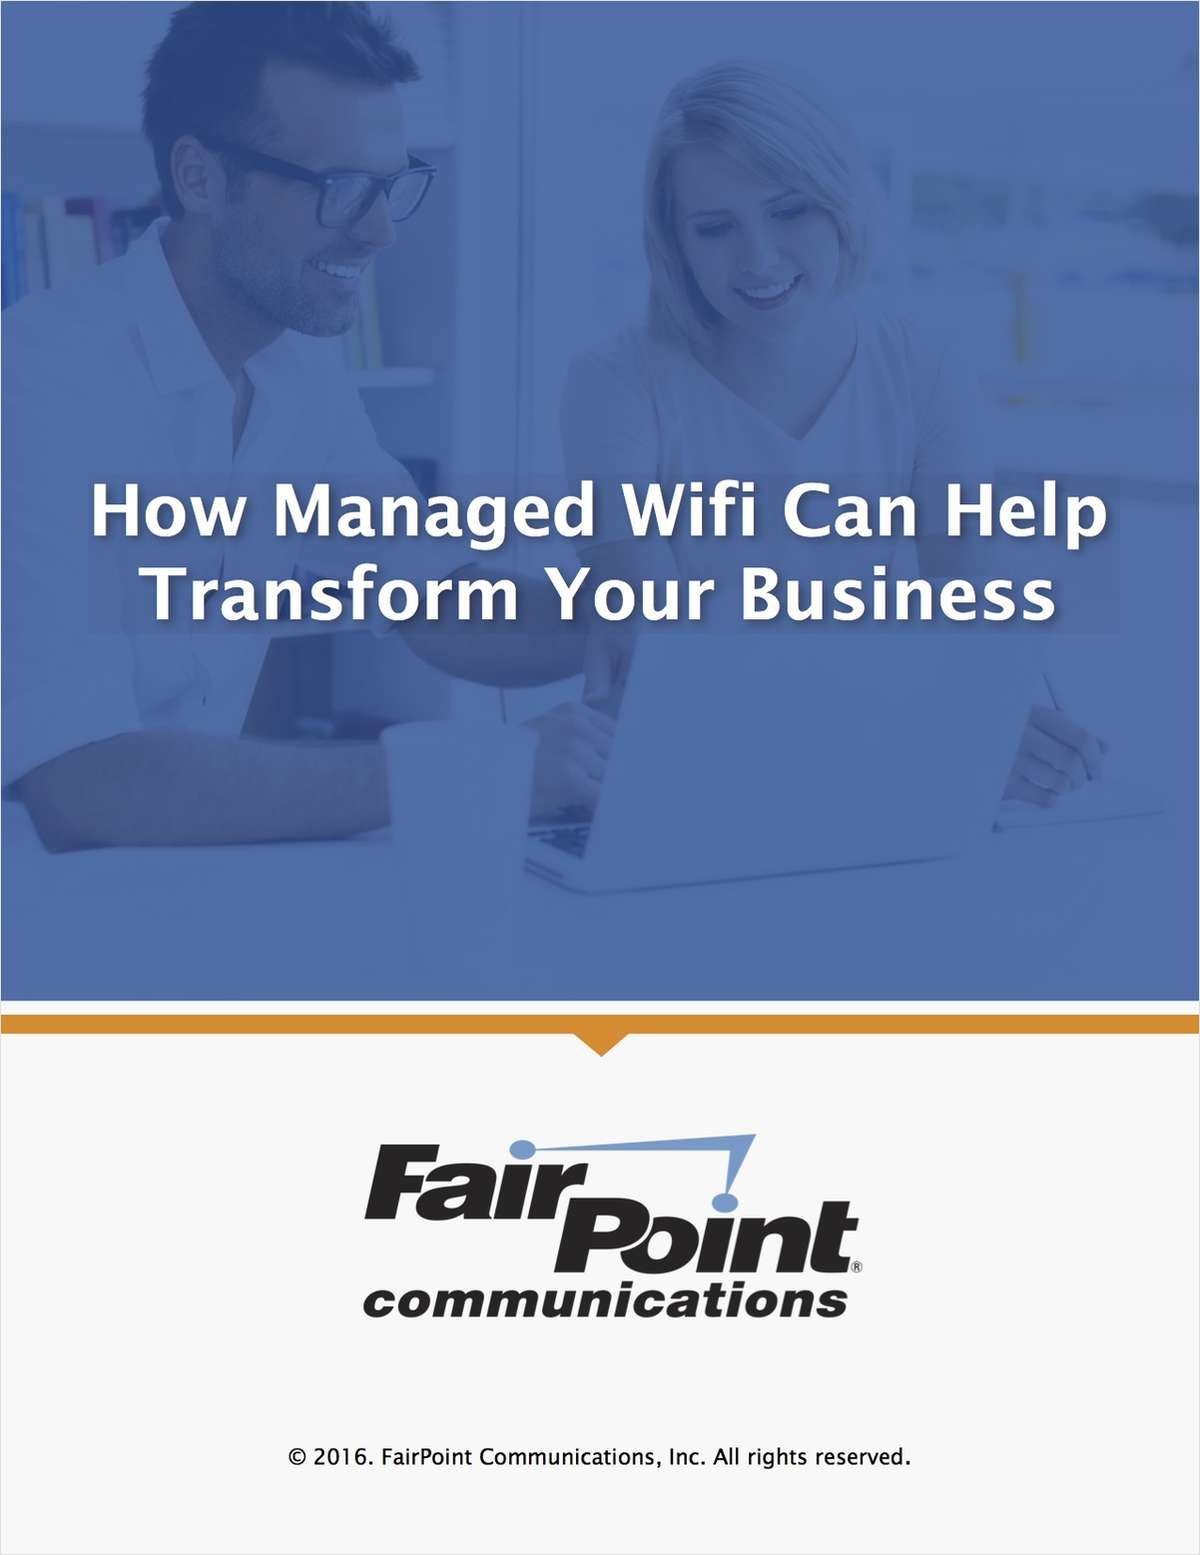 How Managed WiFi Can Help Transform Your Business